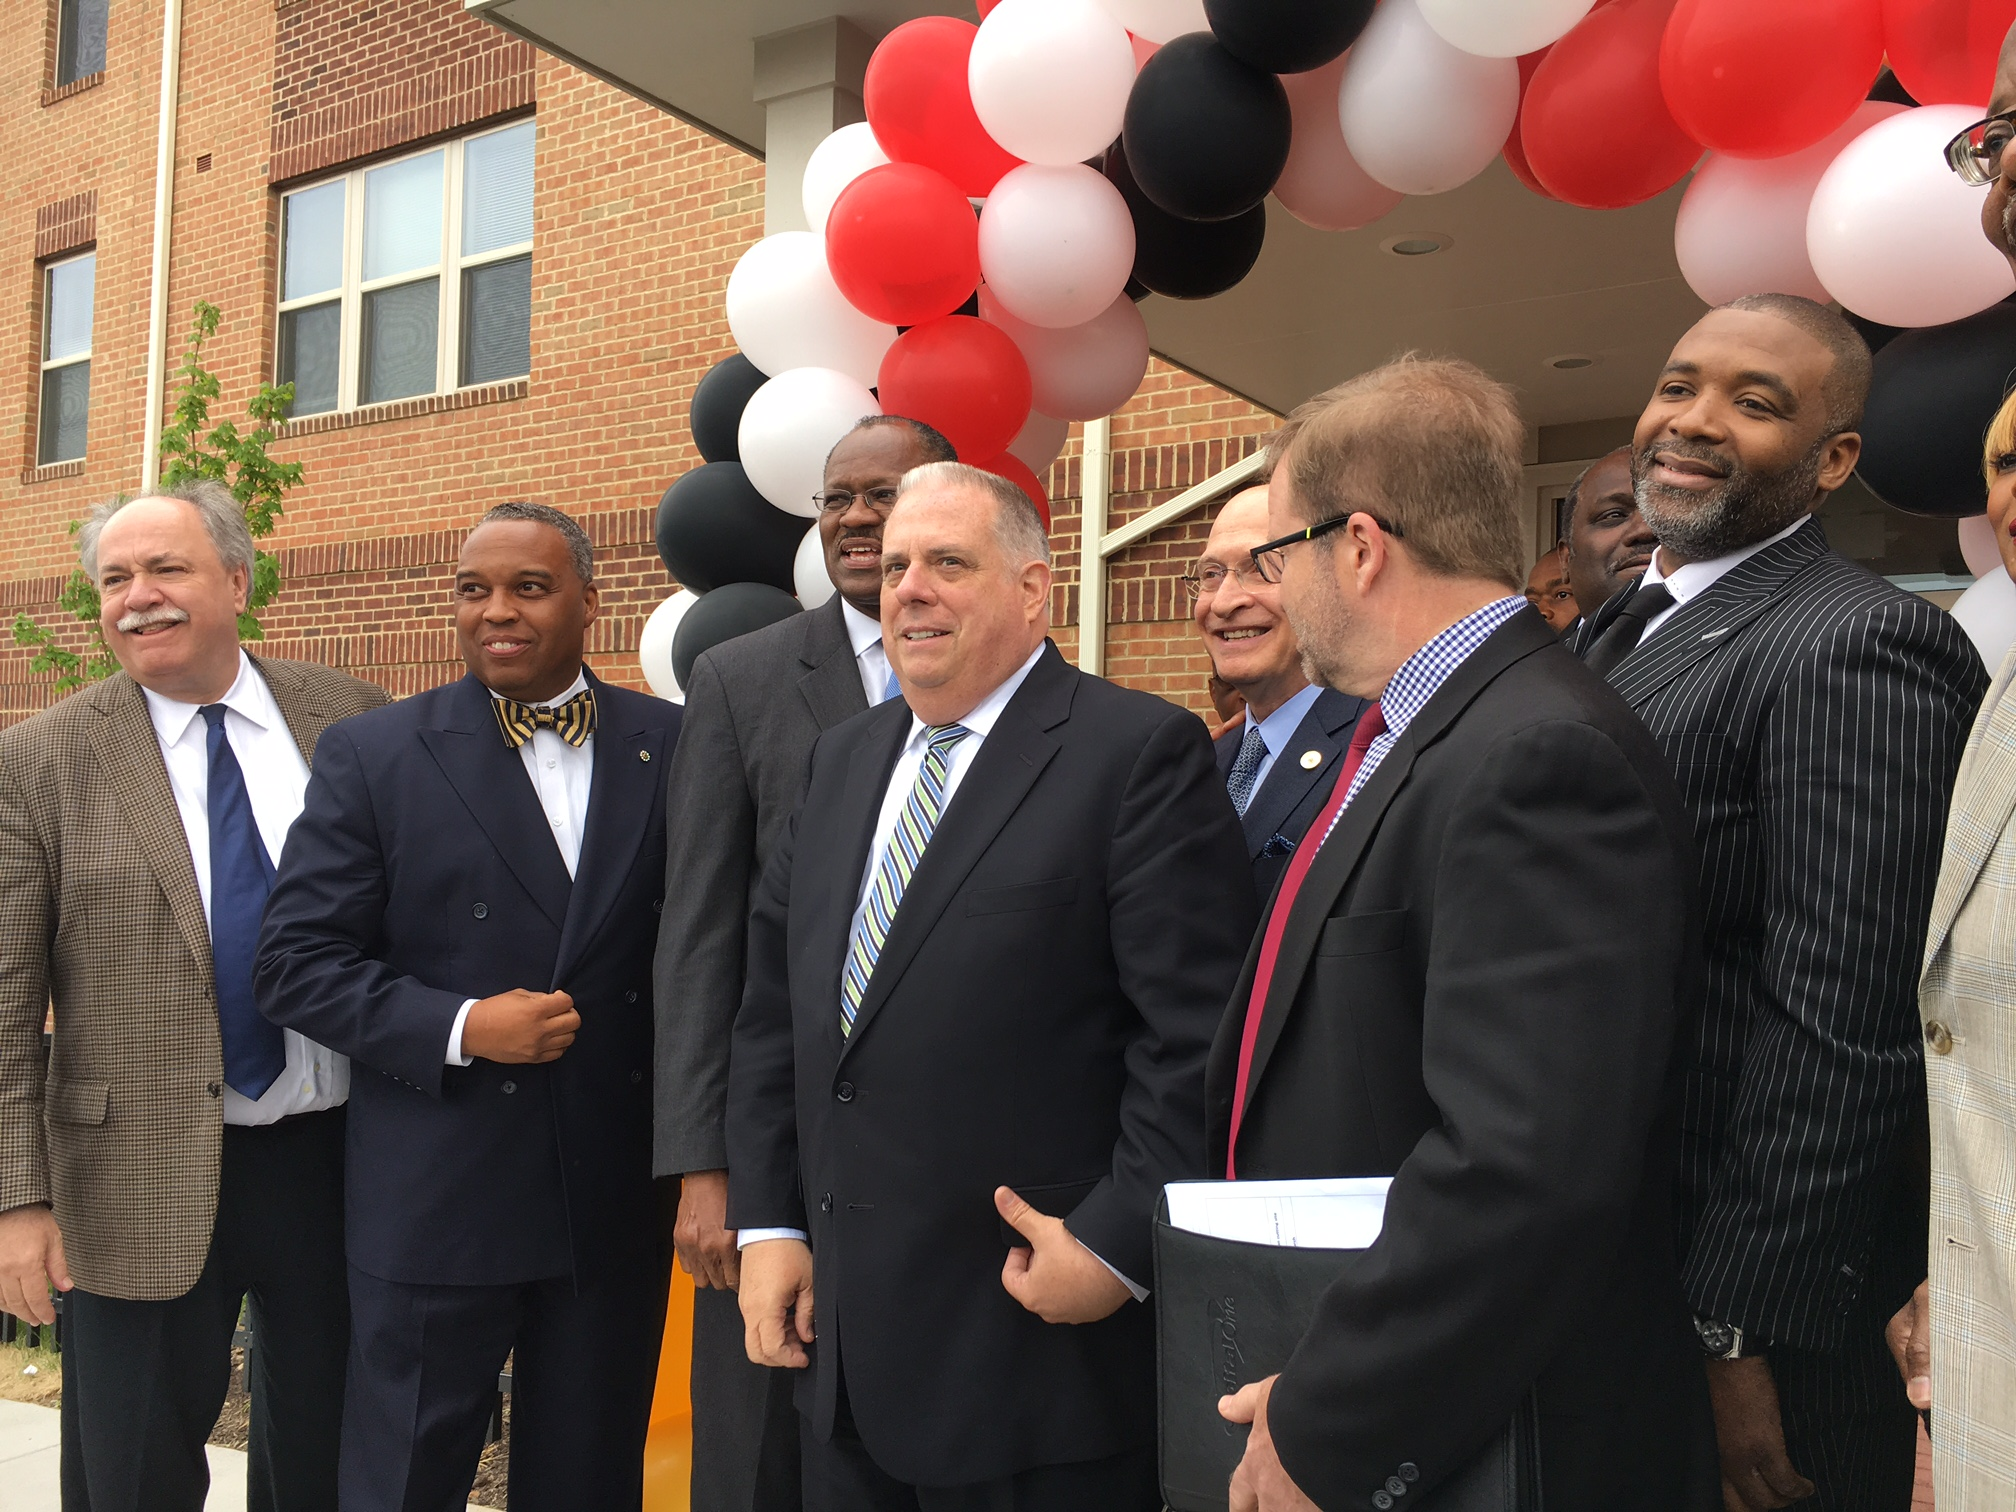 A year later, celebrated Baltimore building reopens after riots